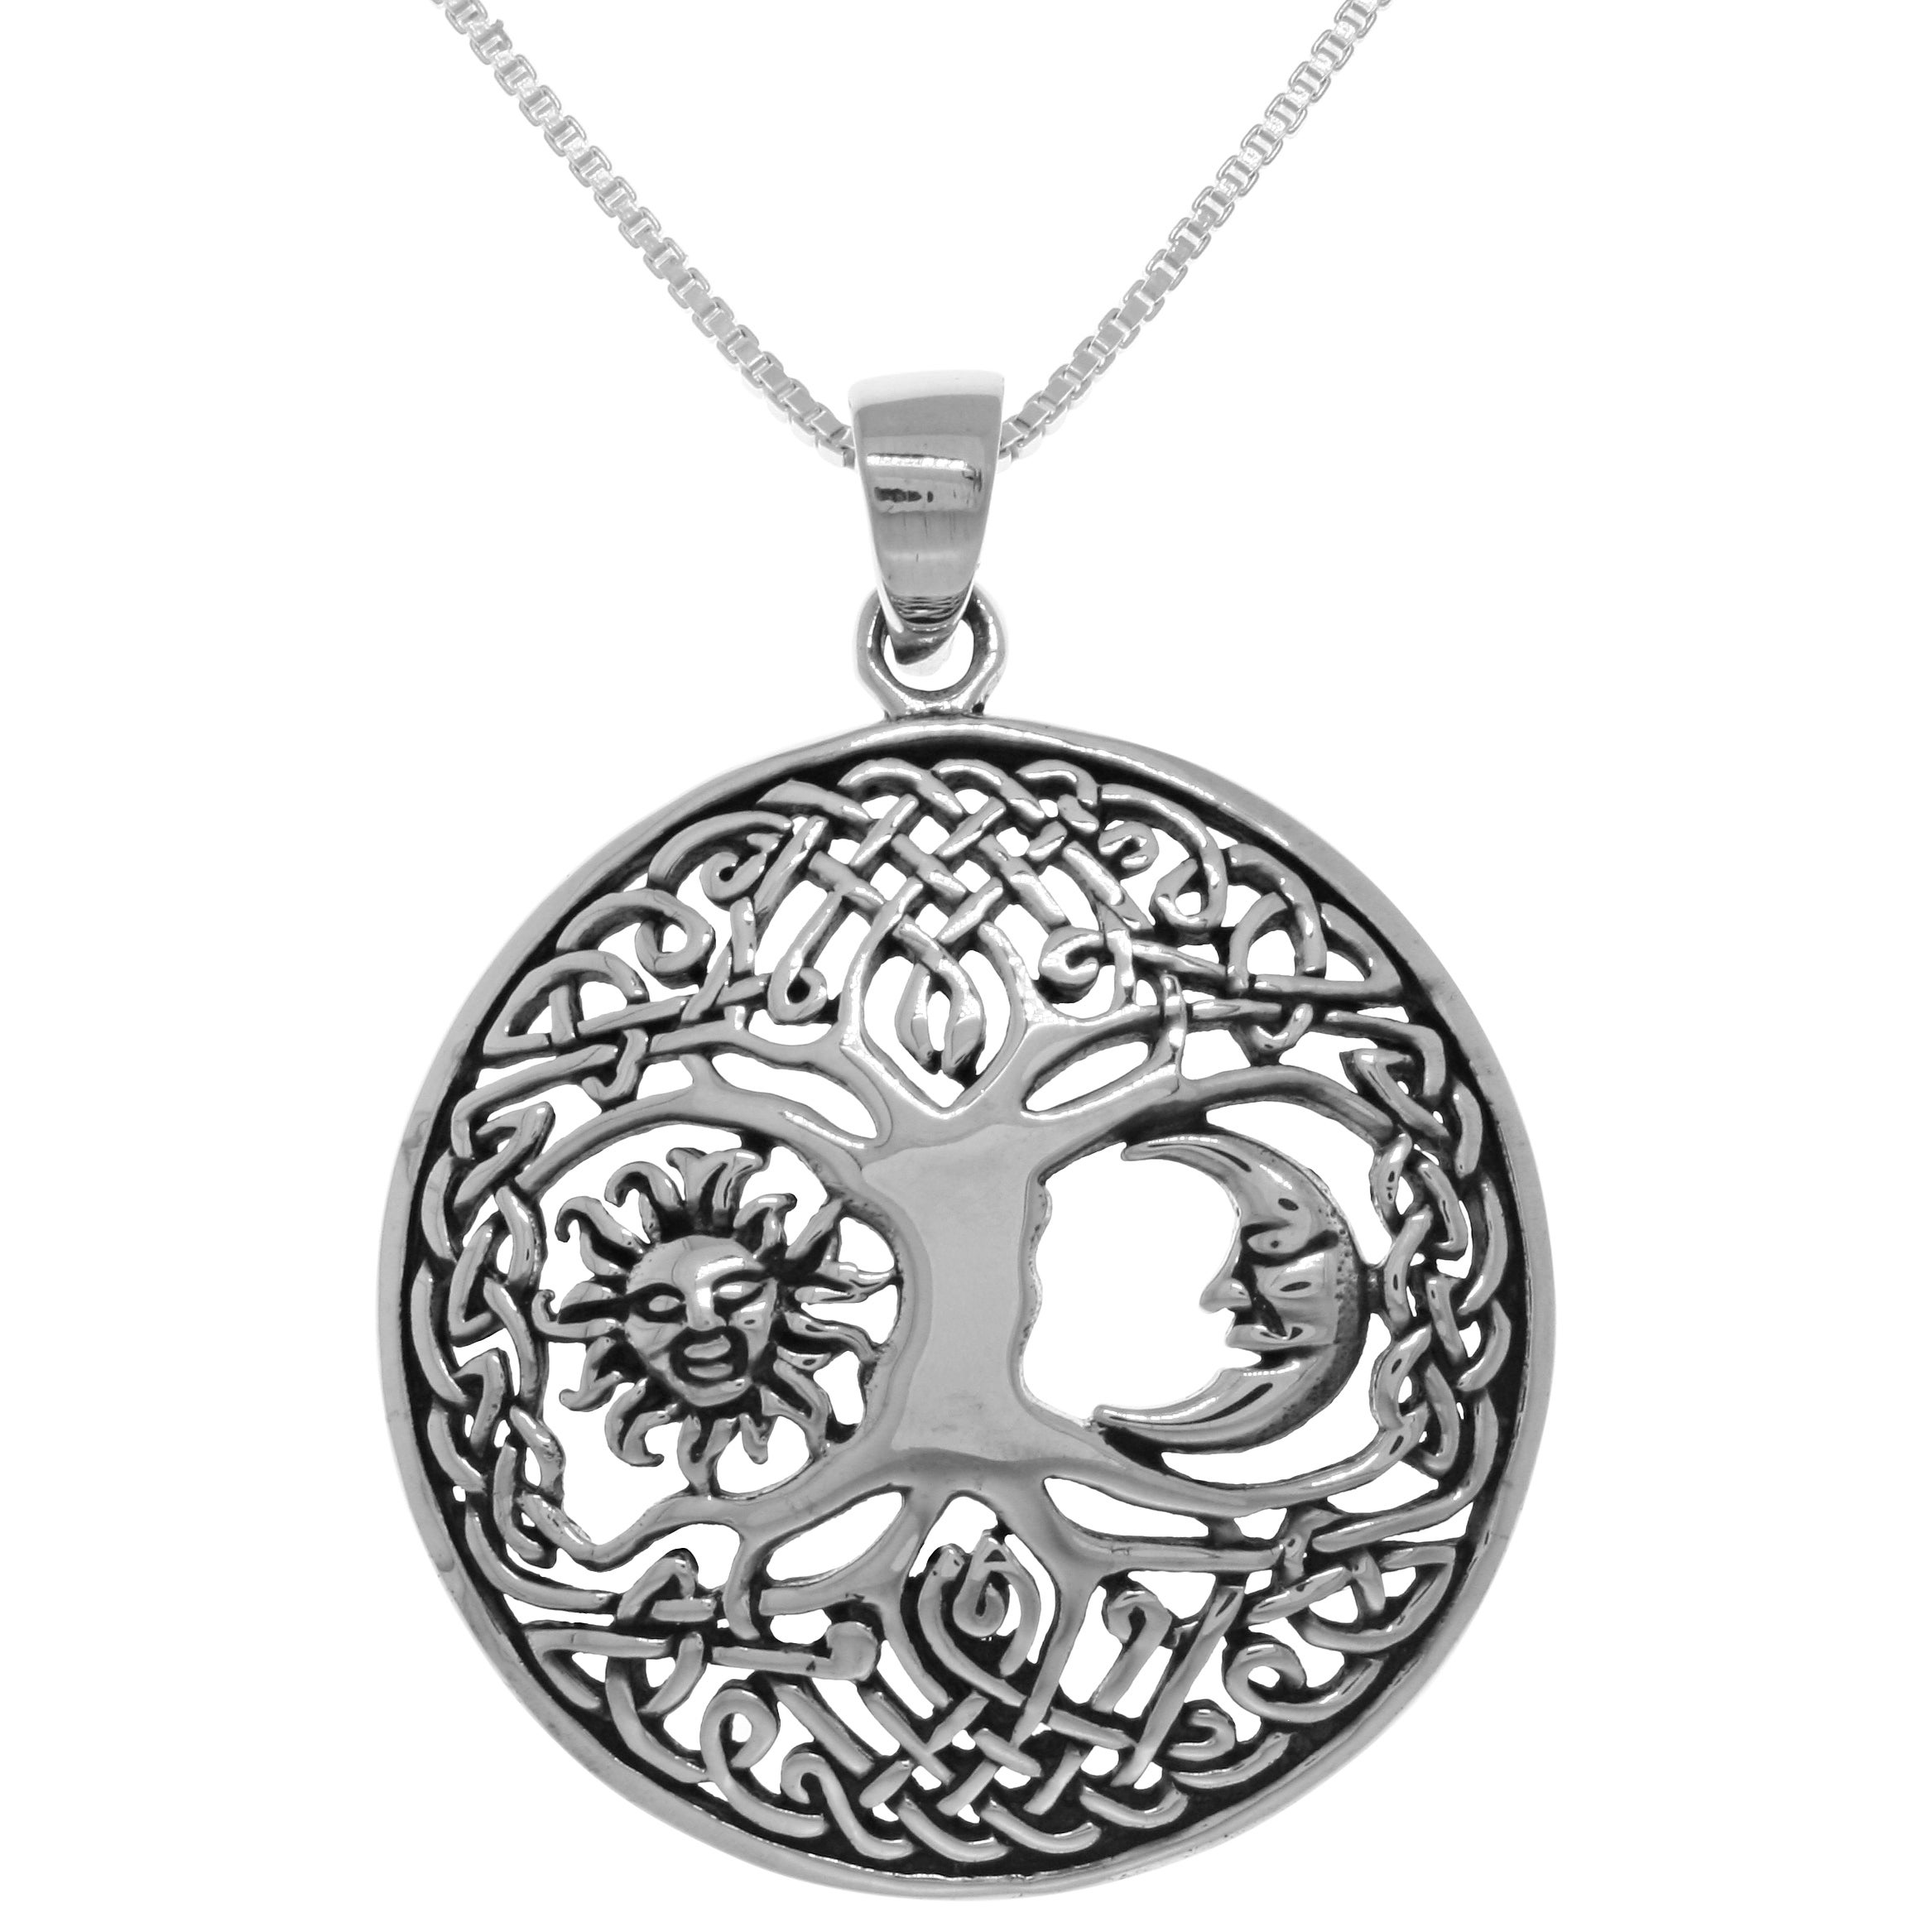 gold circle products stone designs no moon sun moonsunsm silver necklace